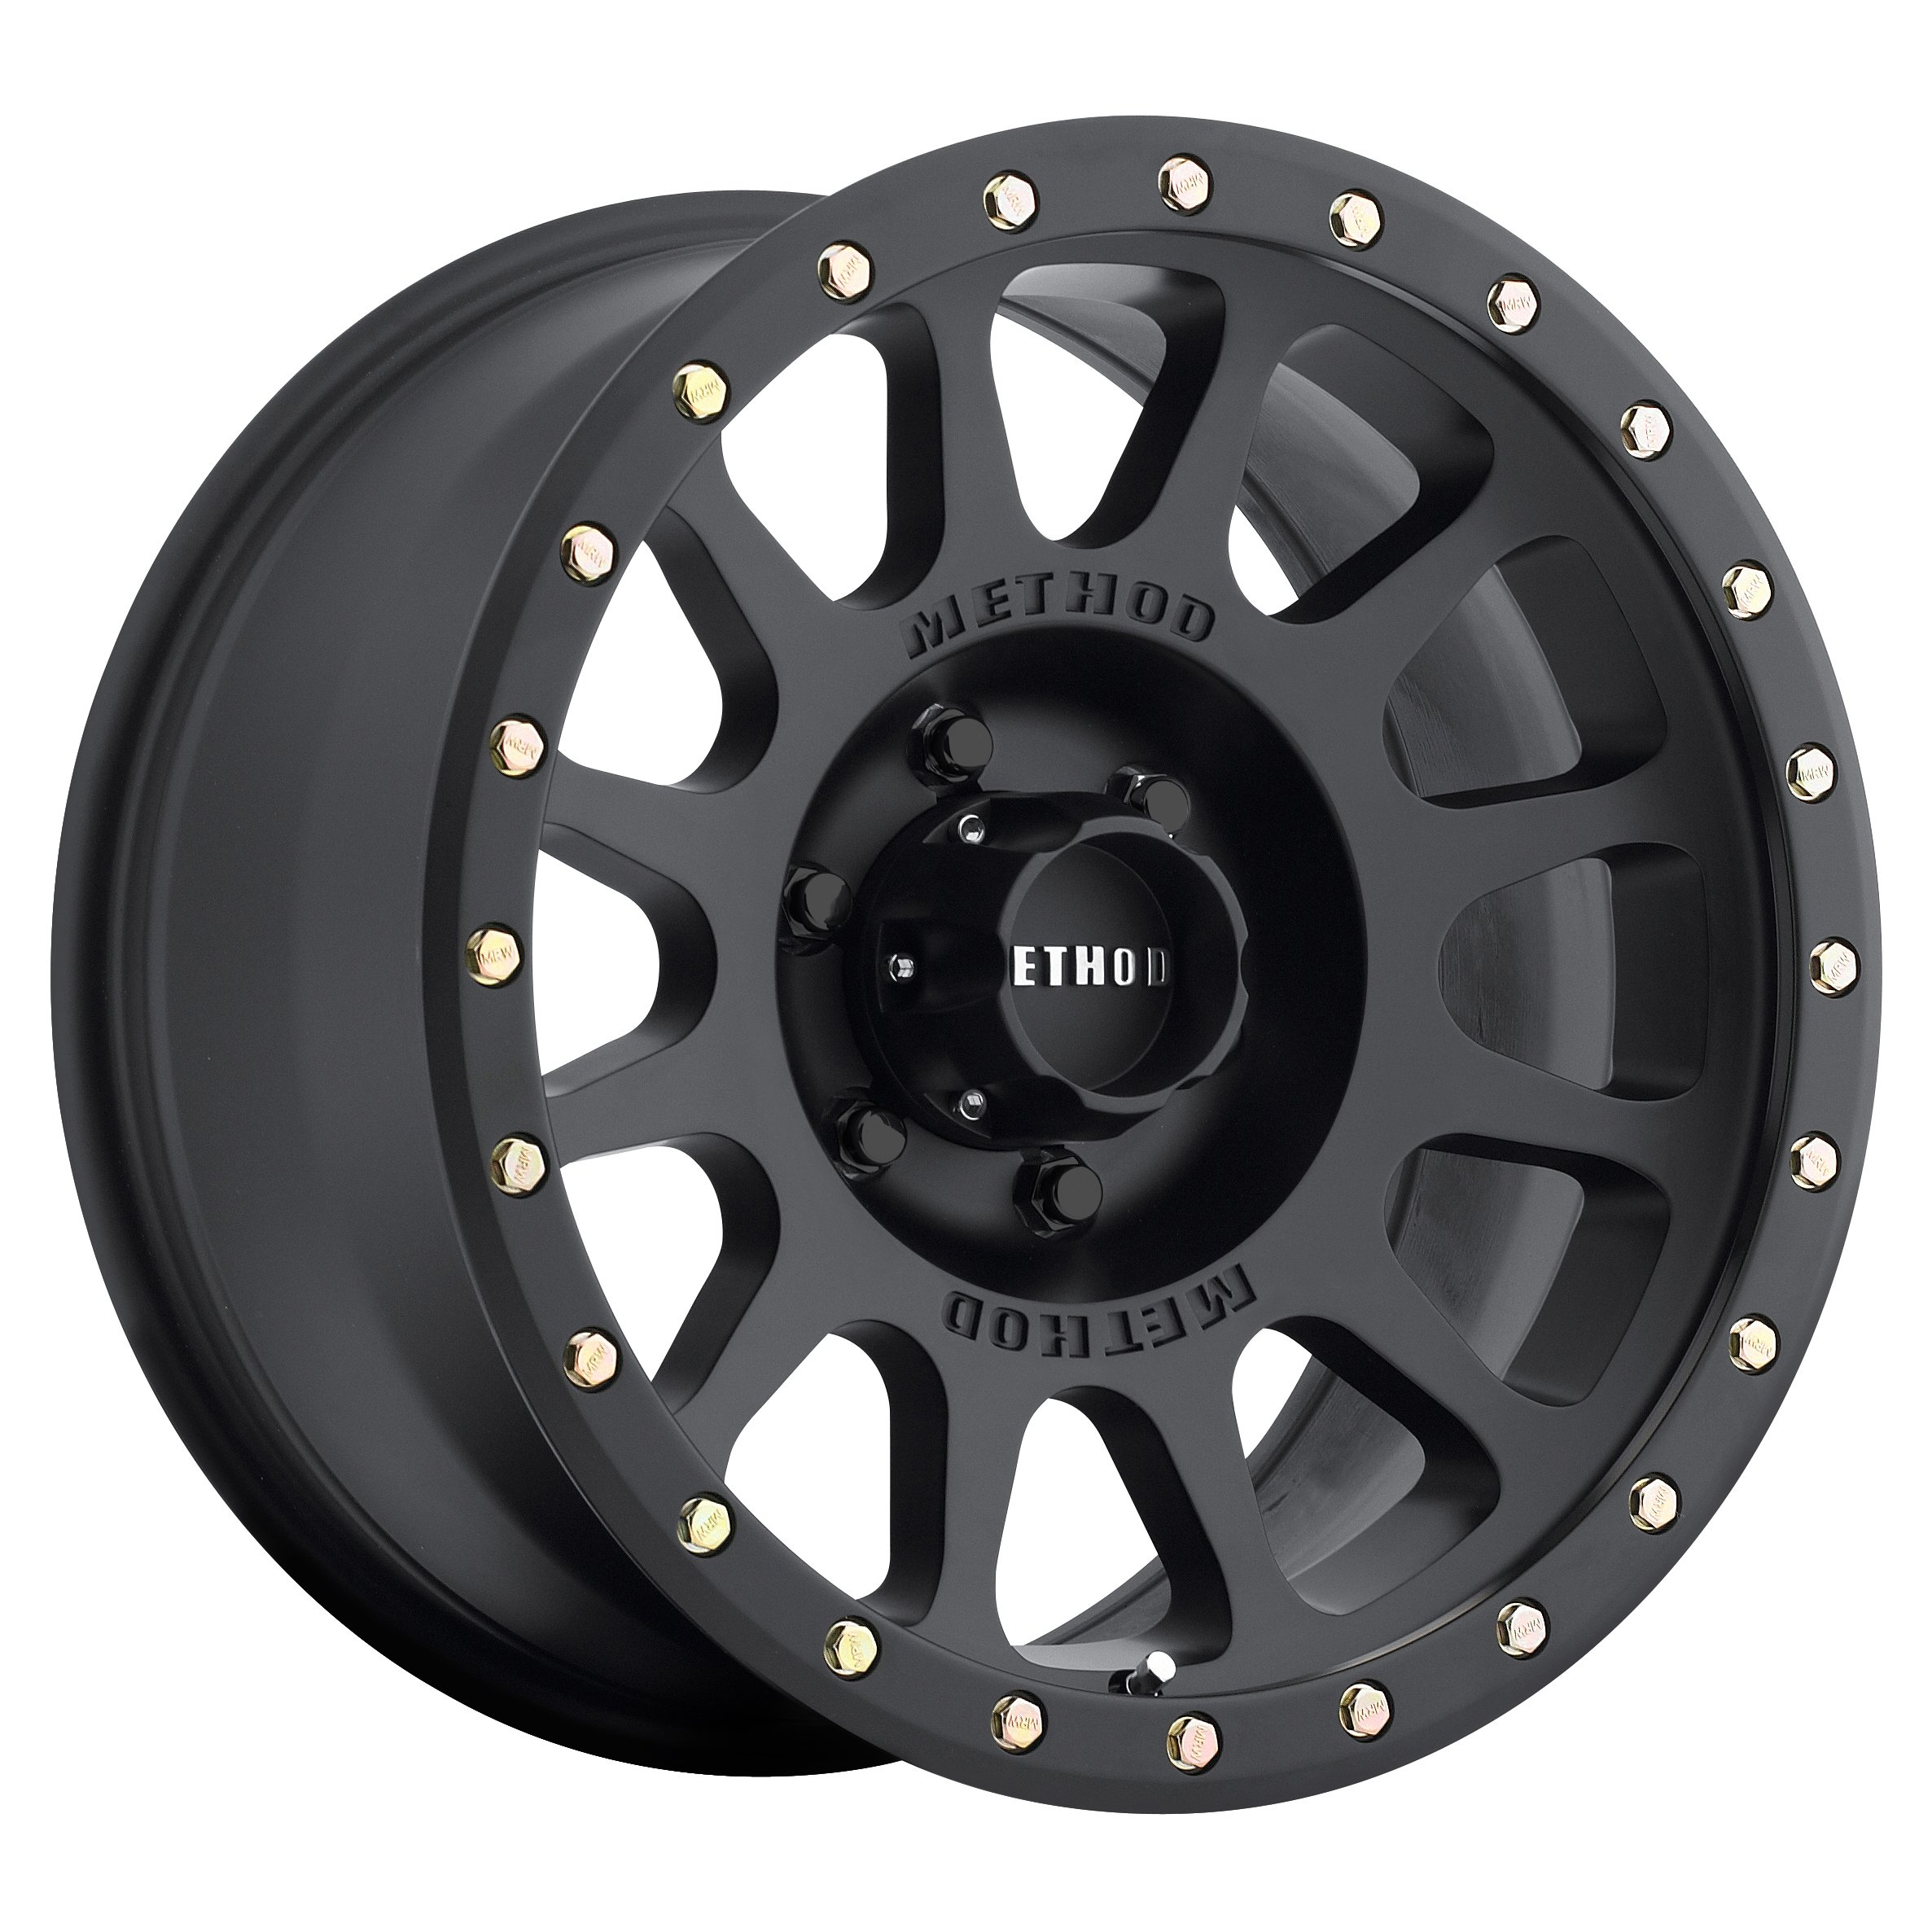 Method Race Wheels NV Matte Black Wheel with Zinc Plated Accent Bolts (20x9''/6x5.5'') 18 mm offset